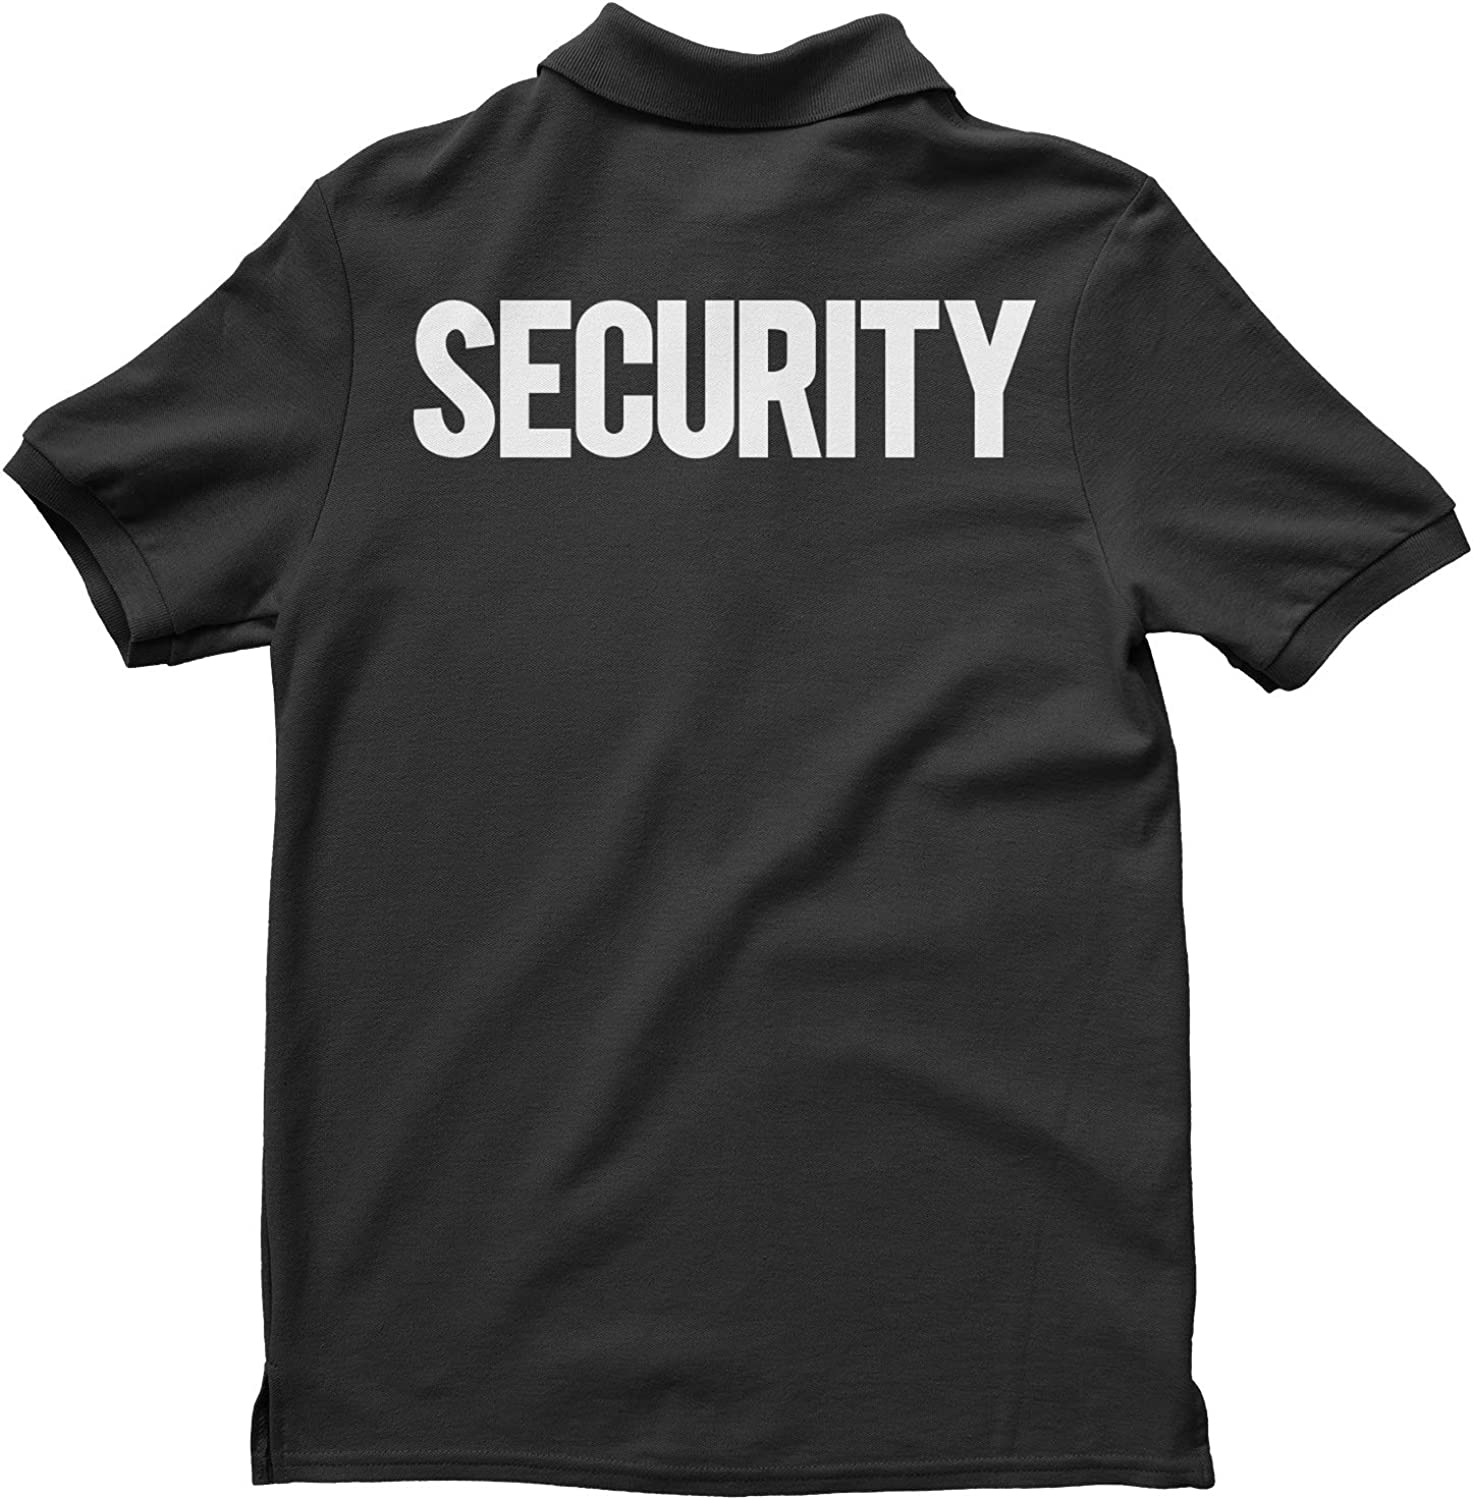 NYC FACTORY Security Polo Shirt Front Back Print Mens Tee Staff Event Uniform Bouncer Screen Printed